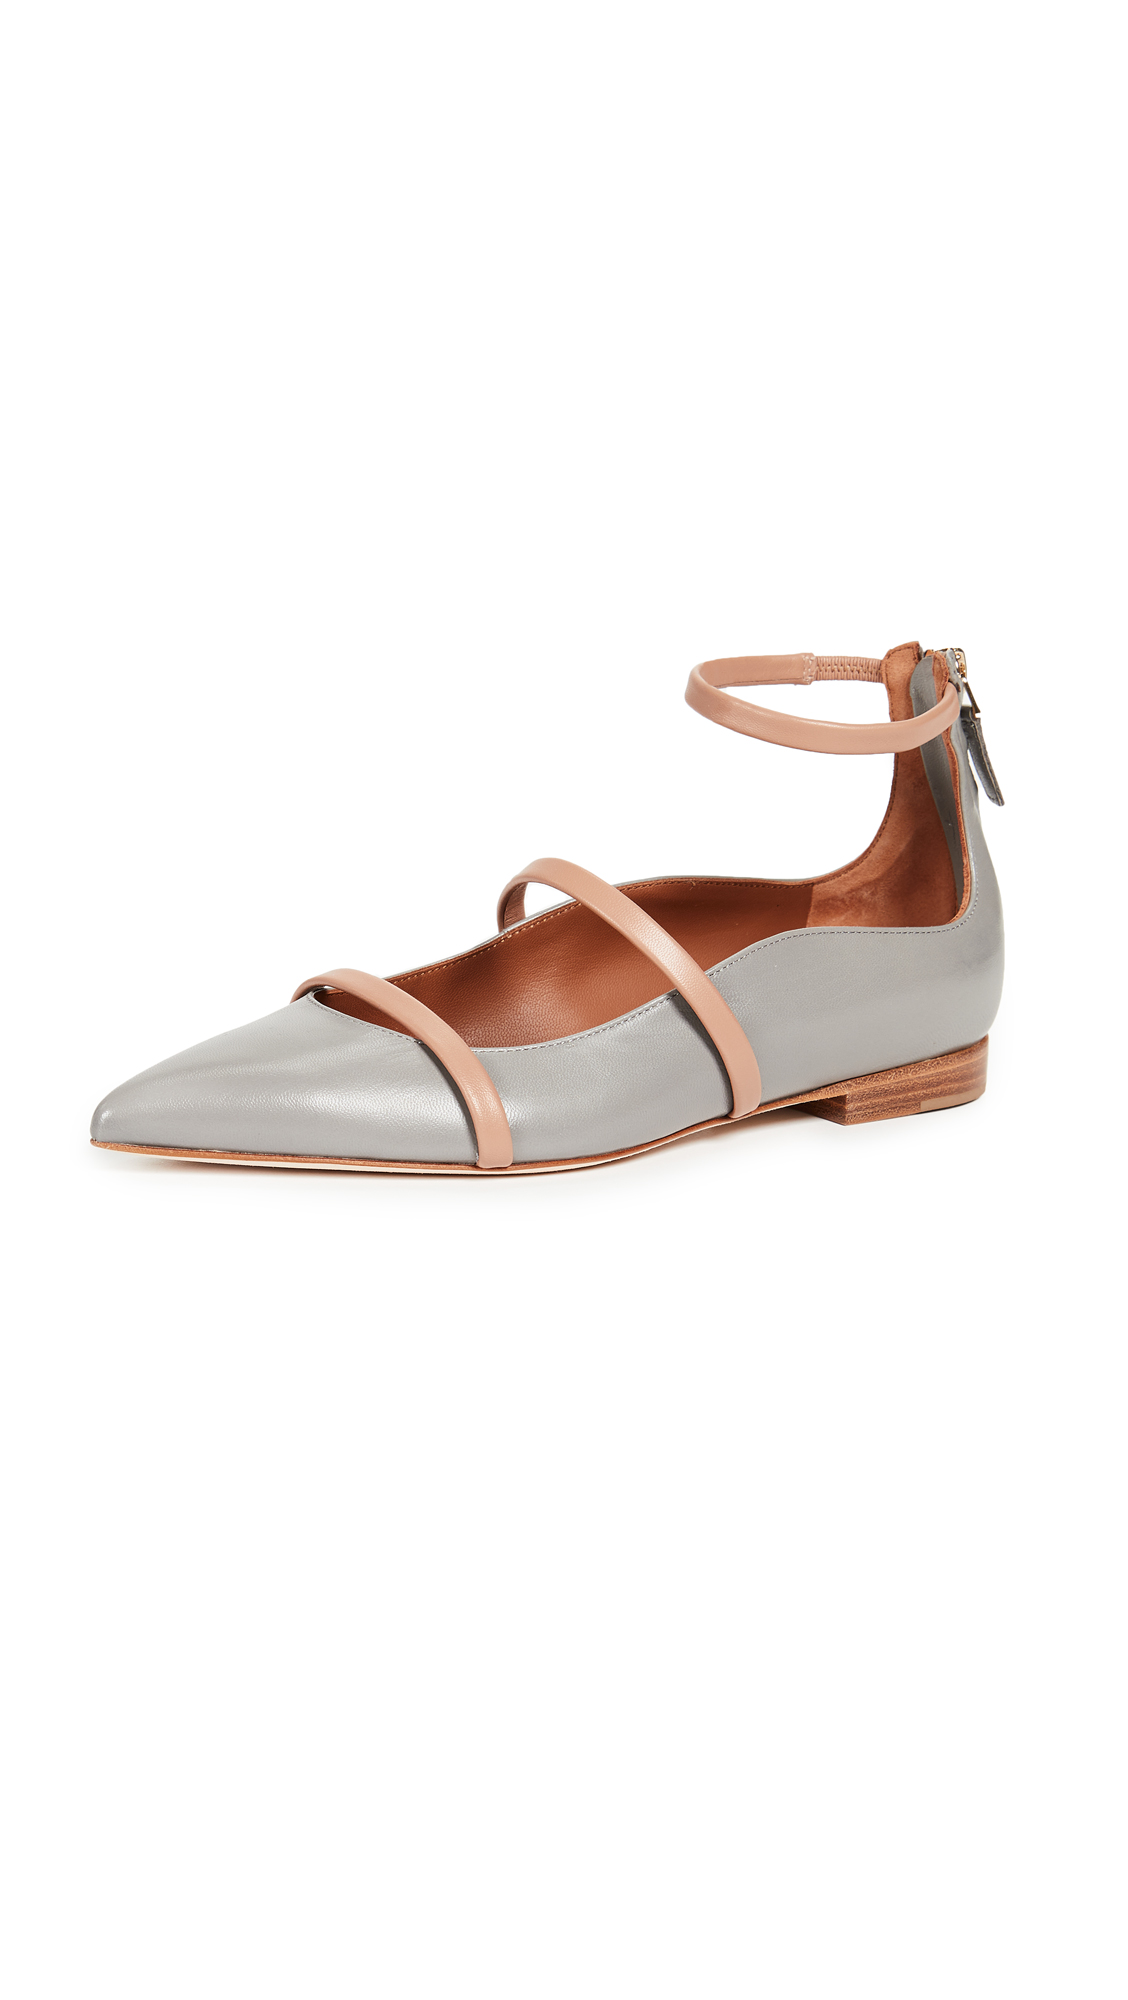 Malone Souliers Robyn Flats - Grey/Nude